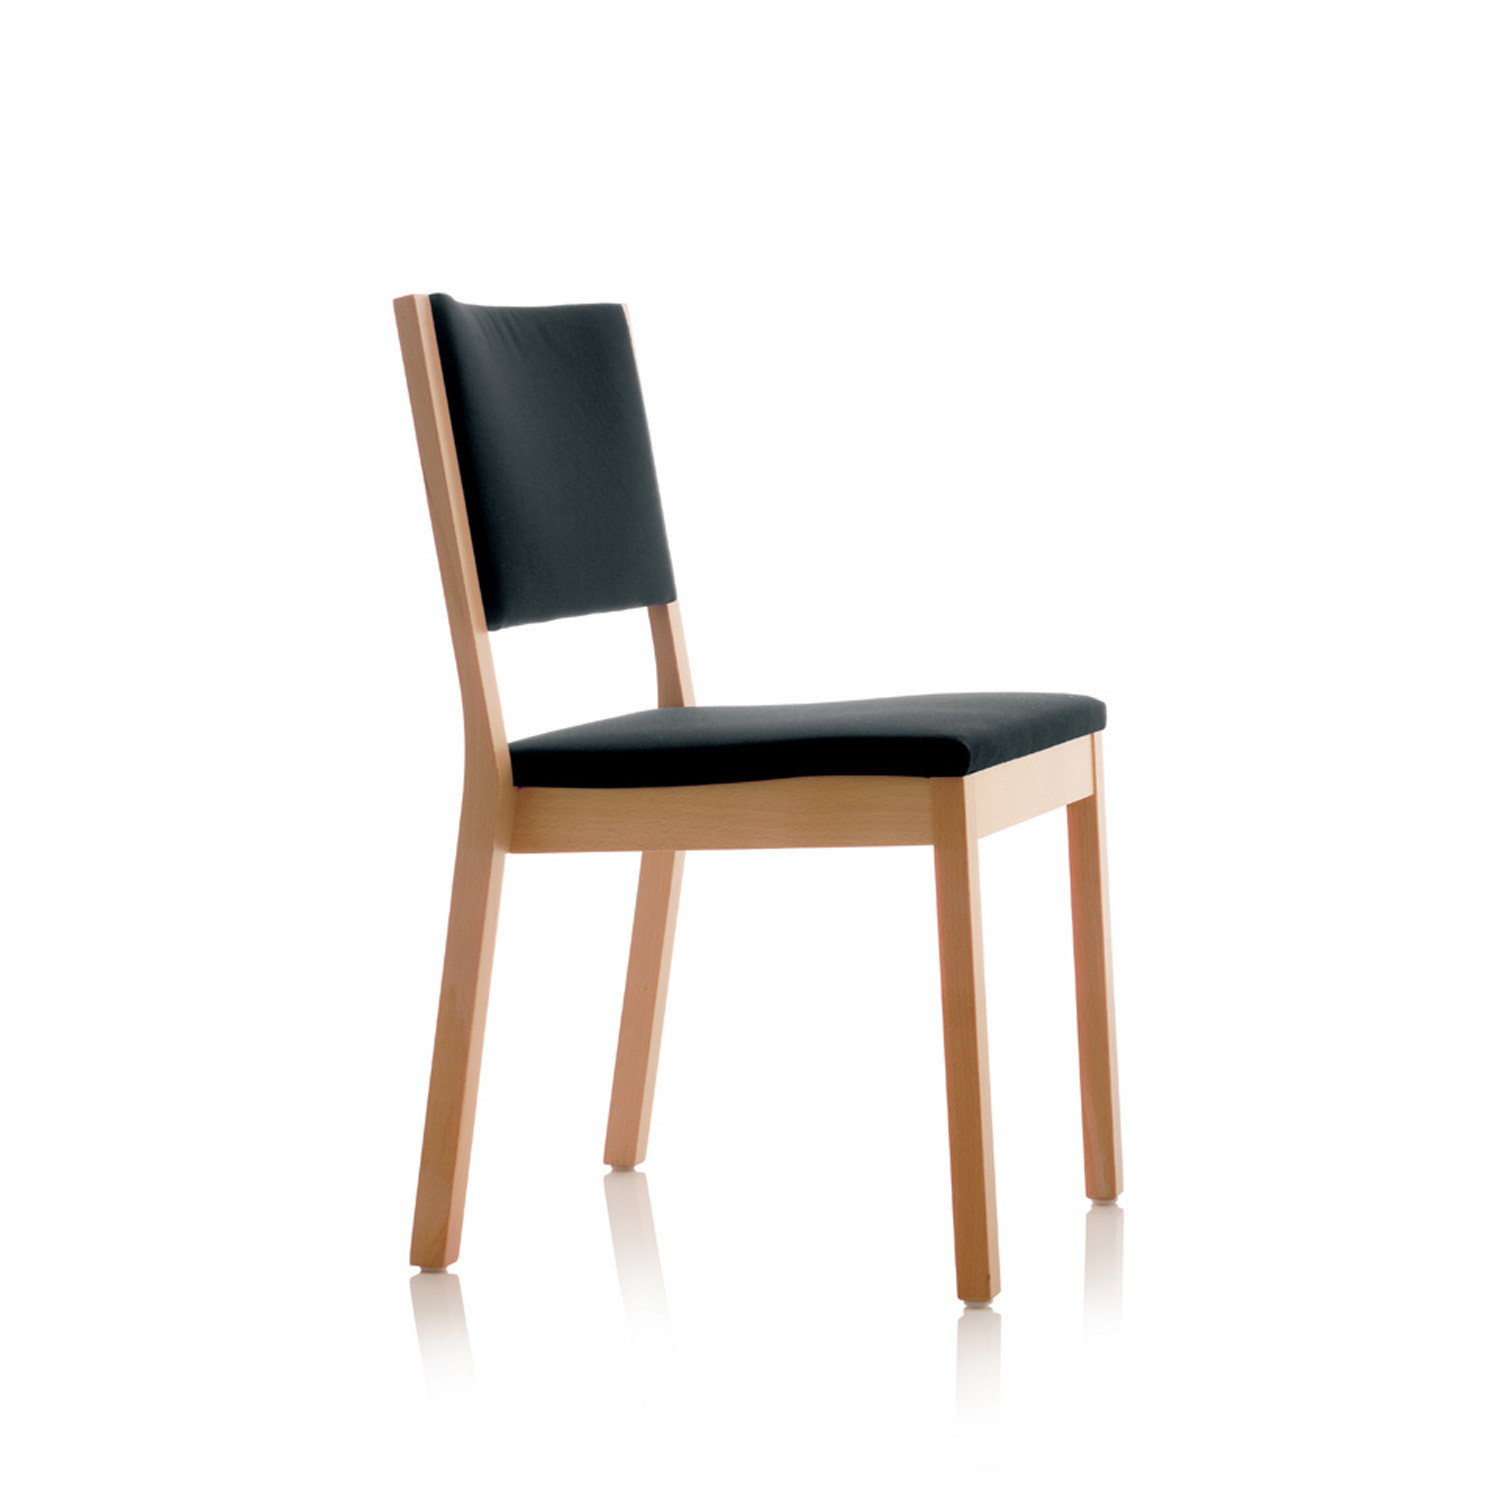 S13 Stackable Chair 6711-103